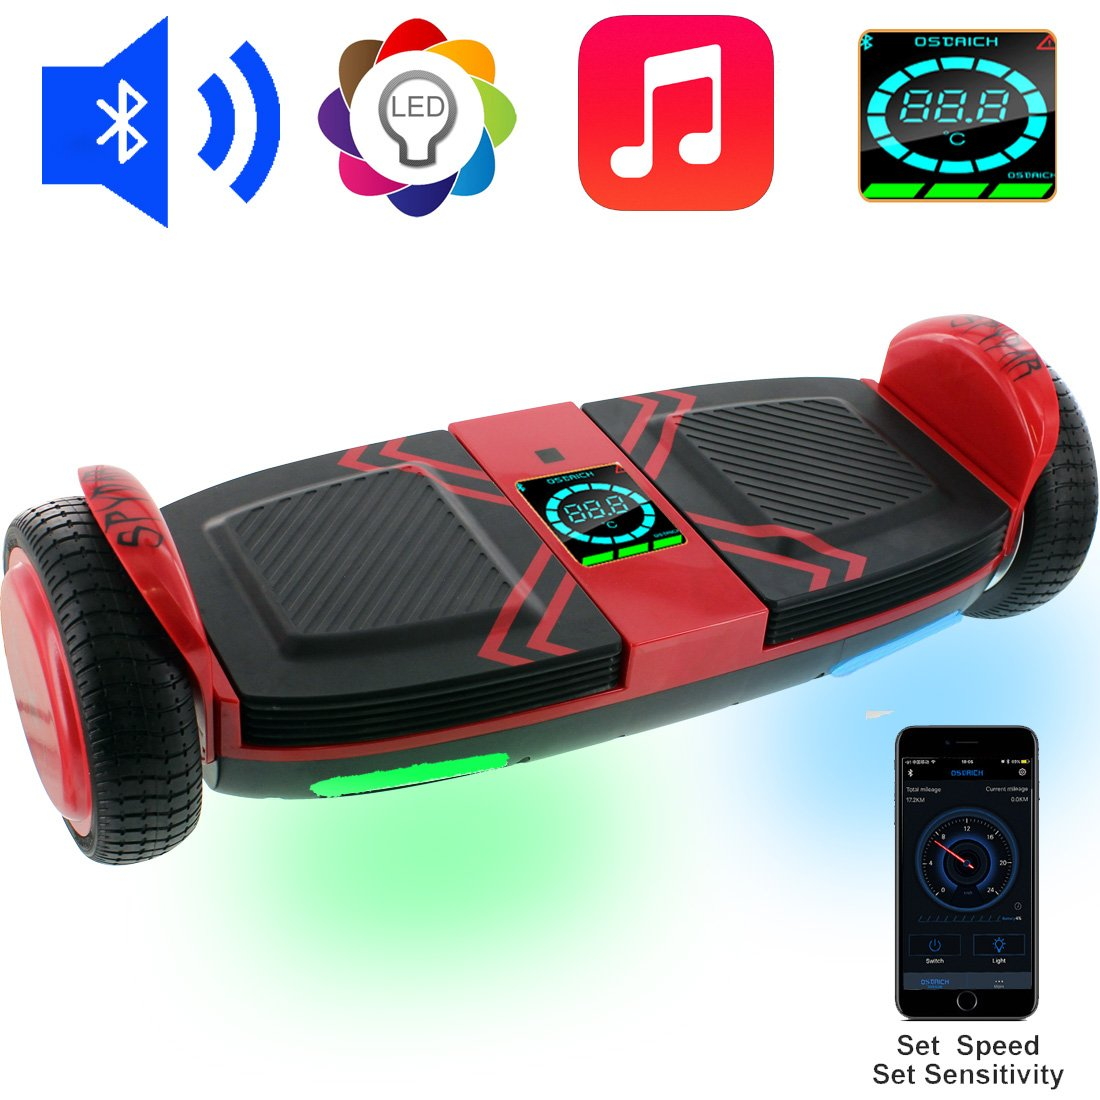 OSDRICH A8 Hoverboard with Bluetooth Speaker Self Balancing Scooter, LED Lights, Smart App Control (UL 2272 Certified) (Red) by OSDRICH